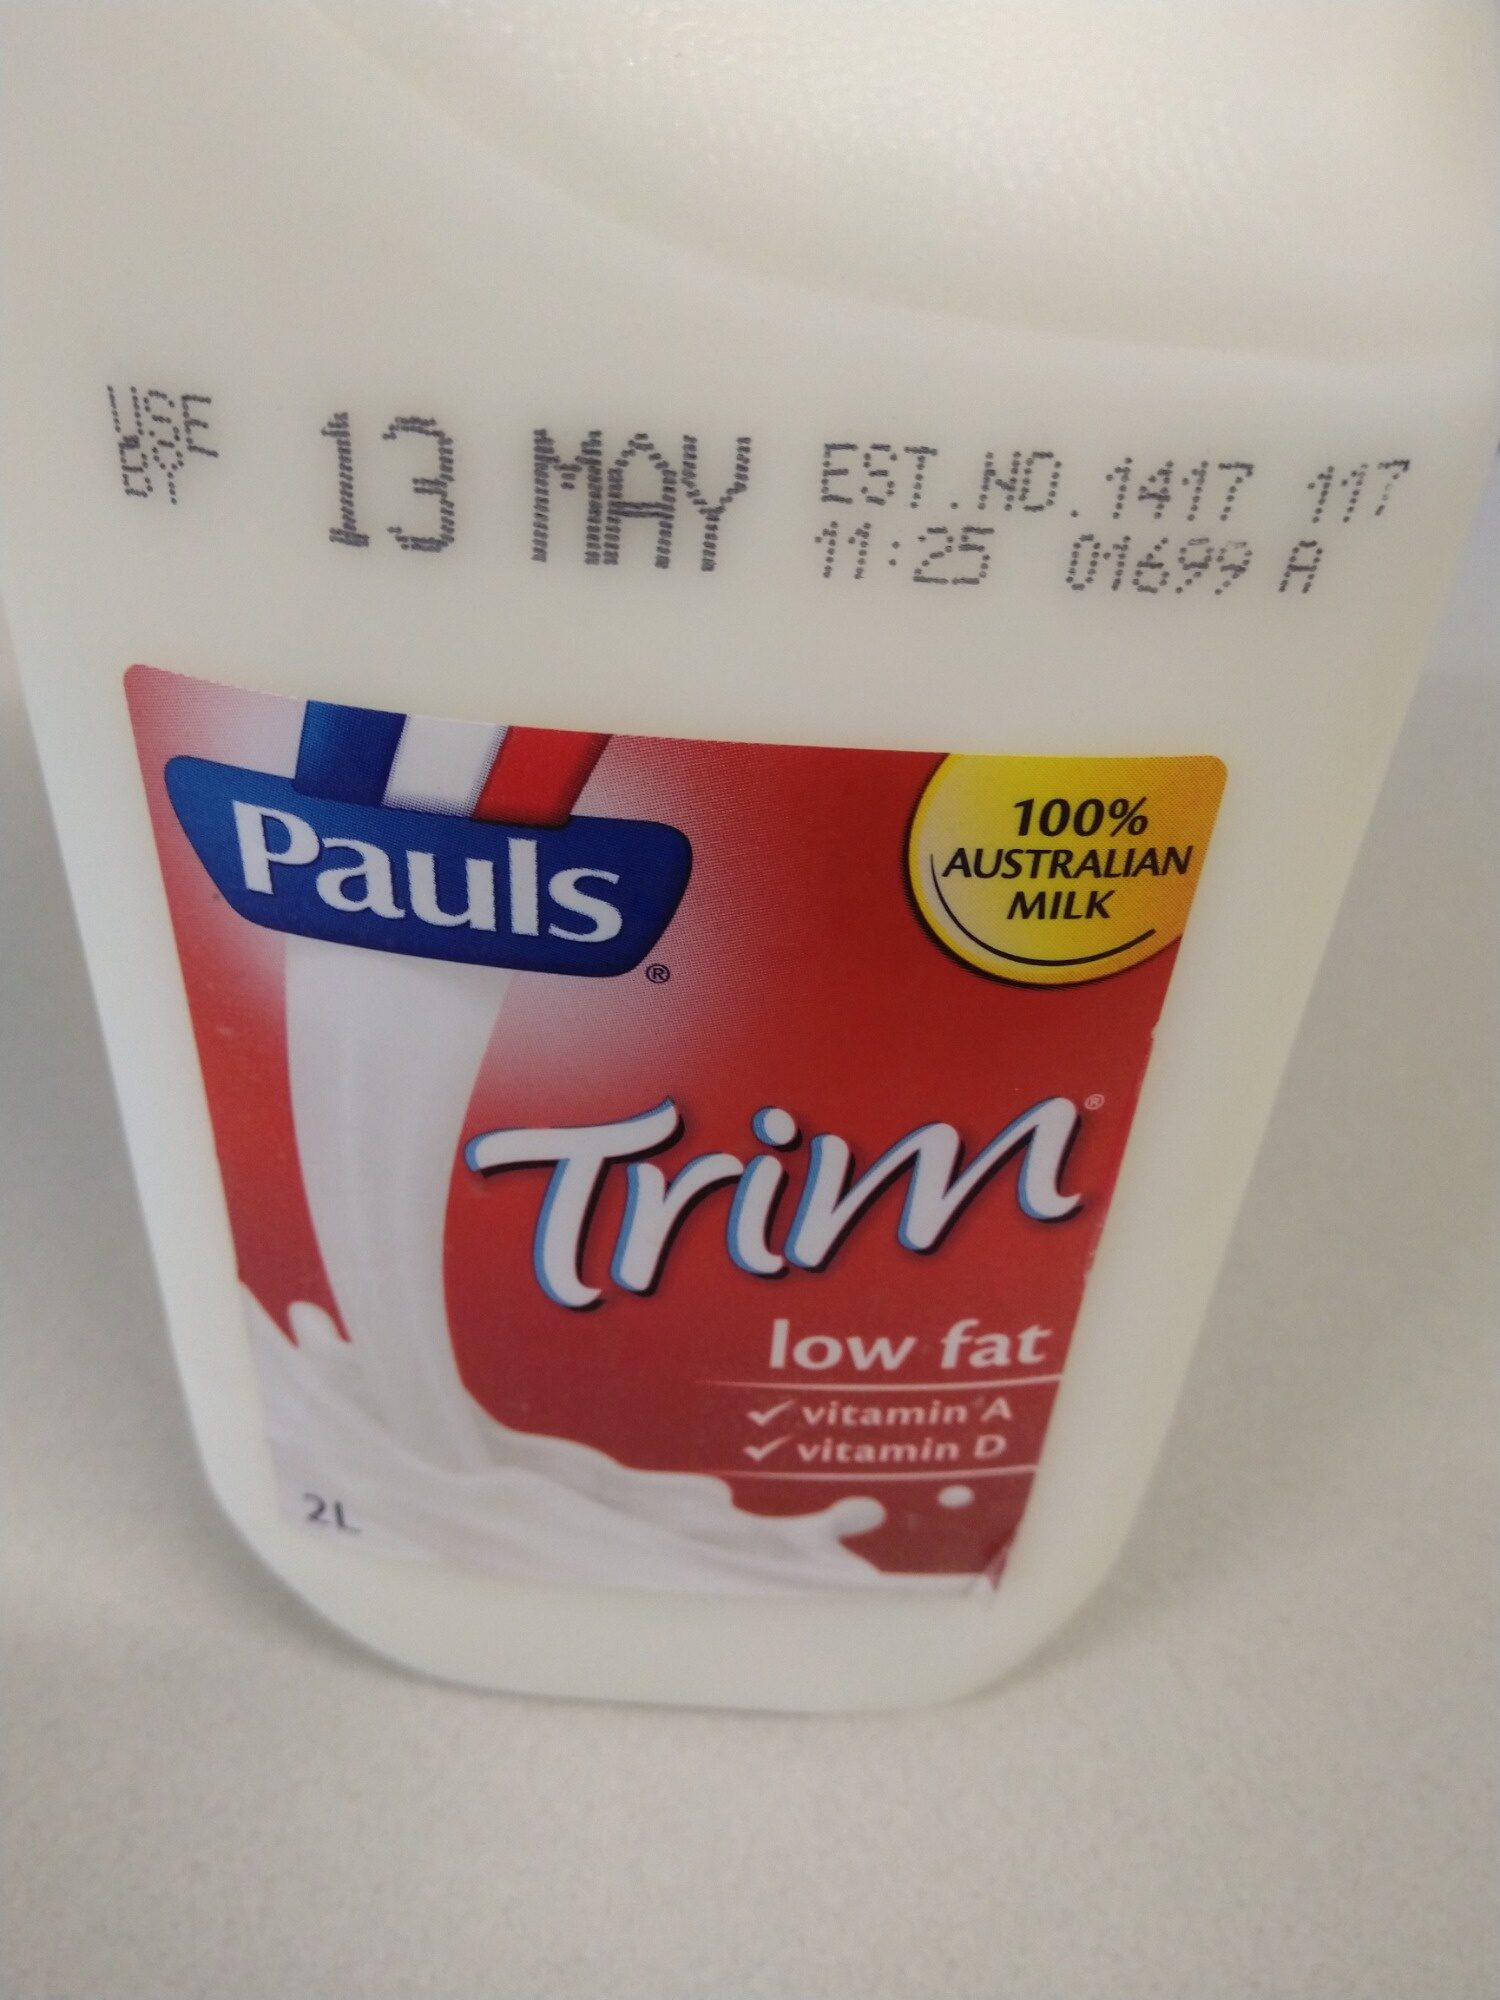 Pauls Trim Milk - Product - en